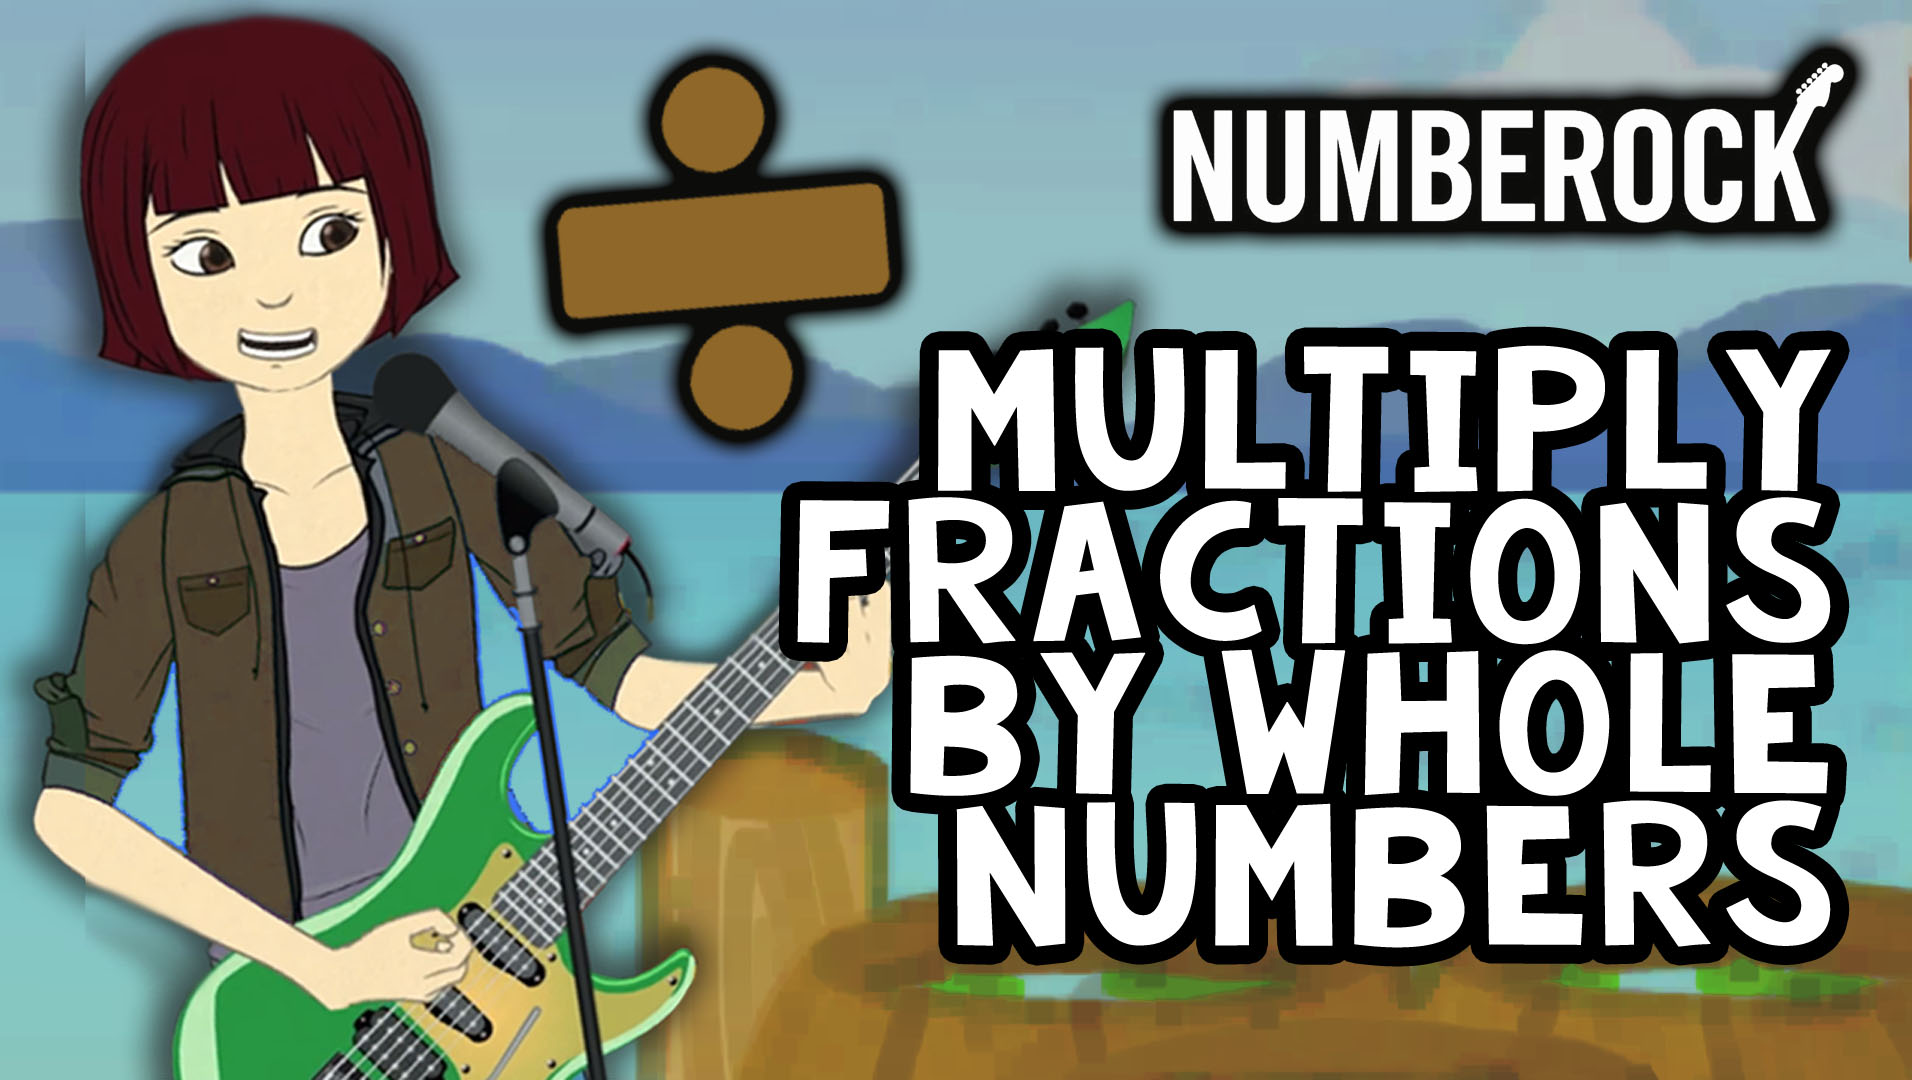 Multiplying Fractions by Whole Numbers with Word Problems, Worksheets